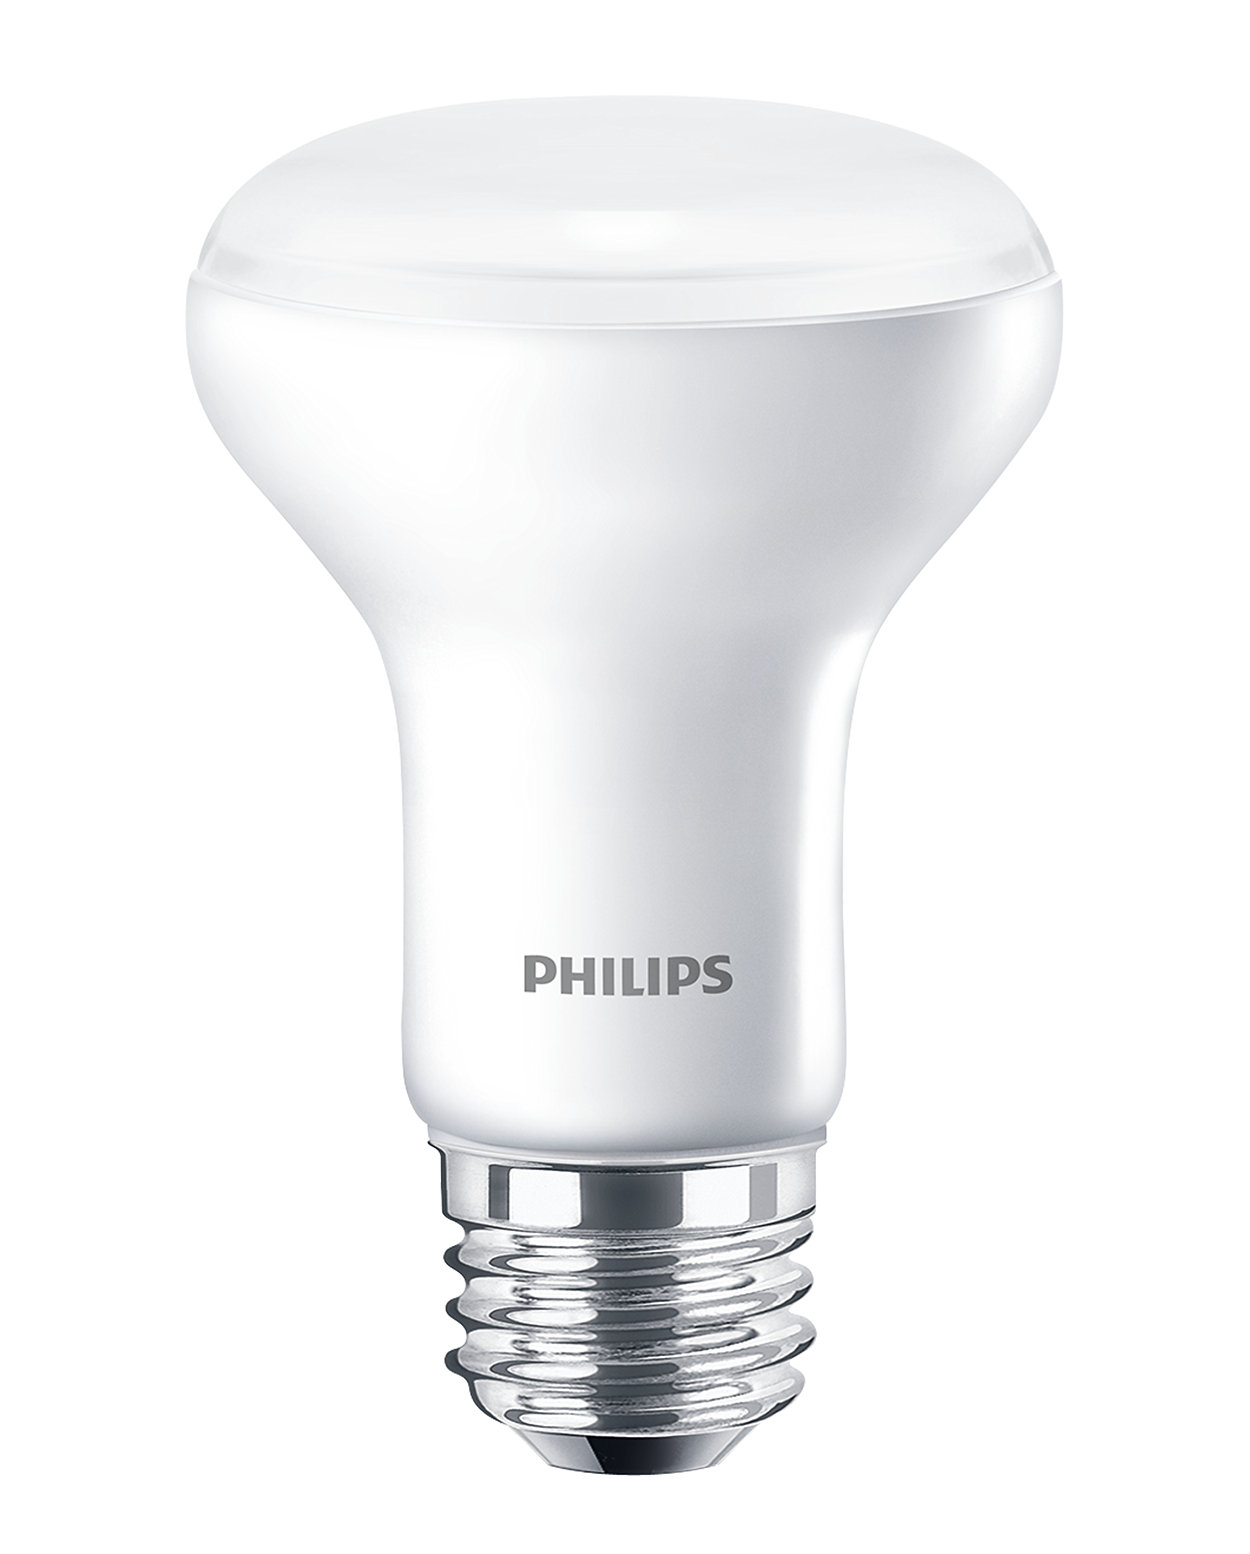 Attractive, dimmable, and afforadlble LED R20 lamp solution